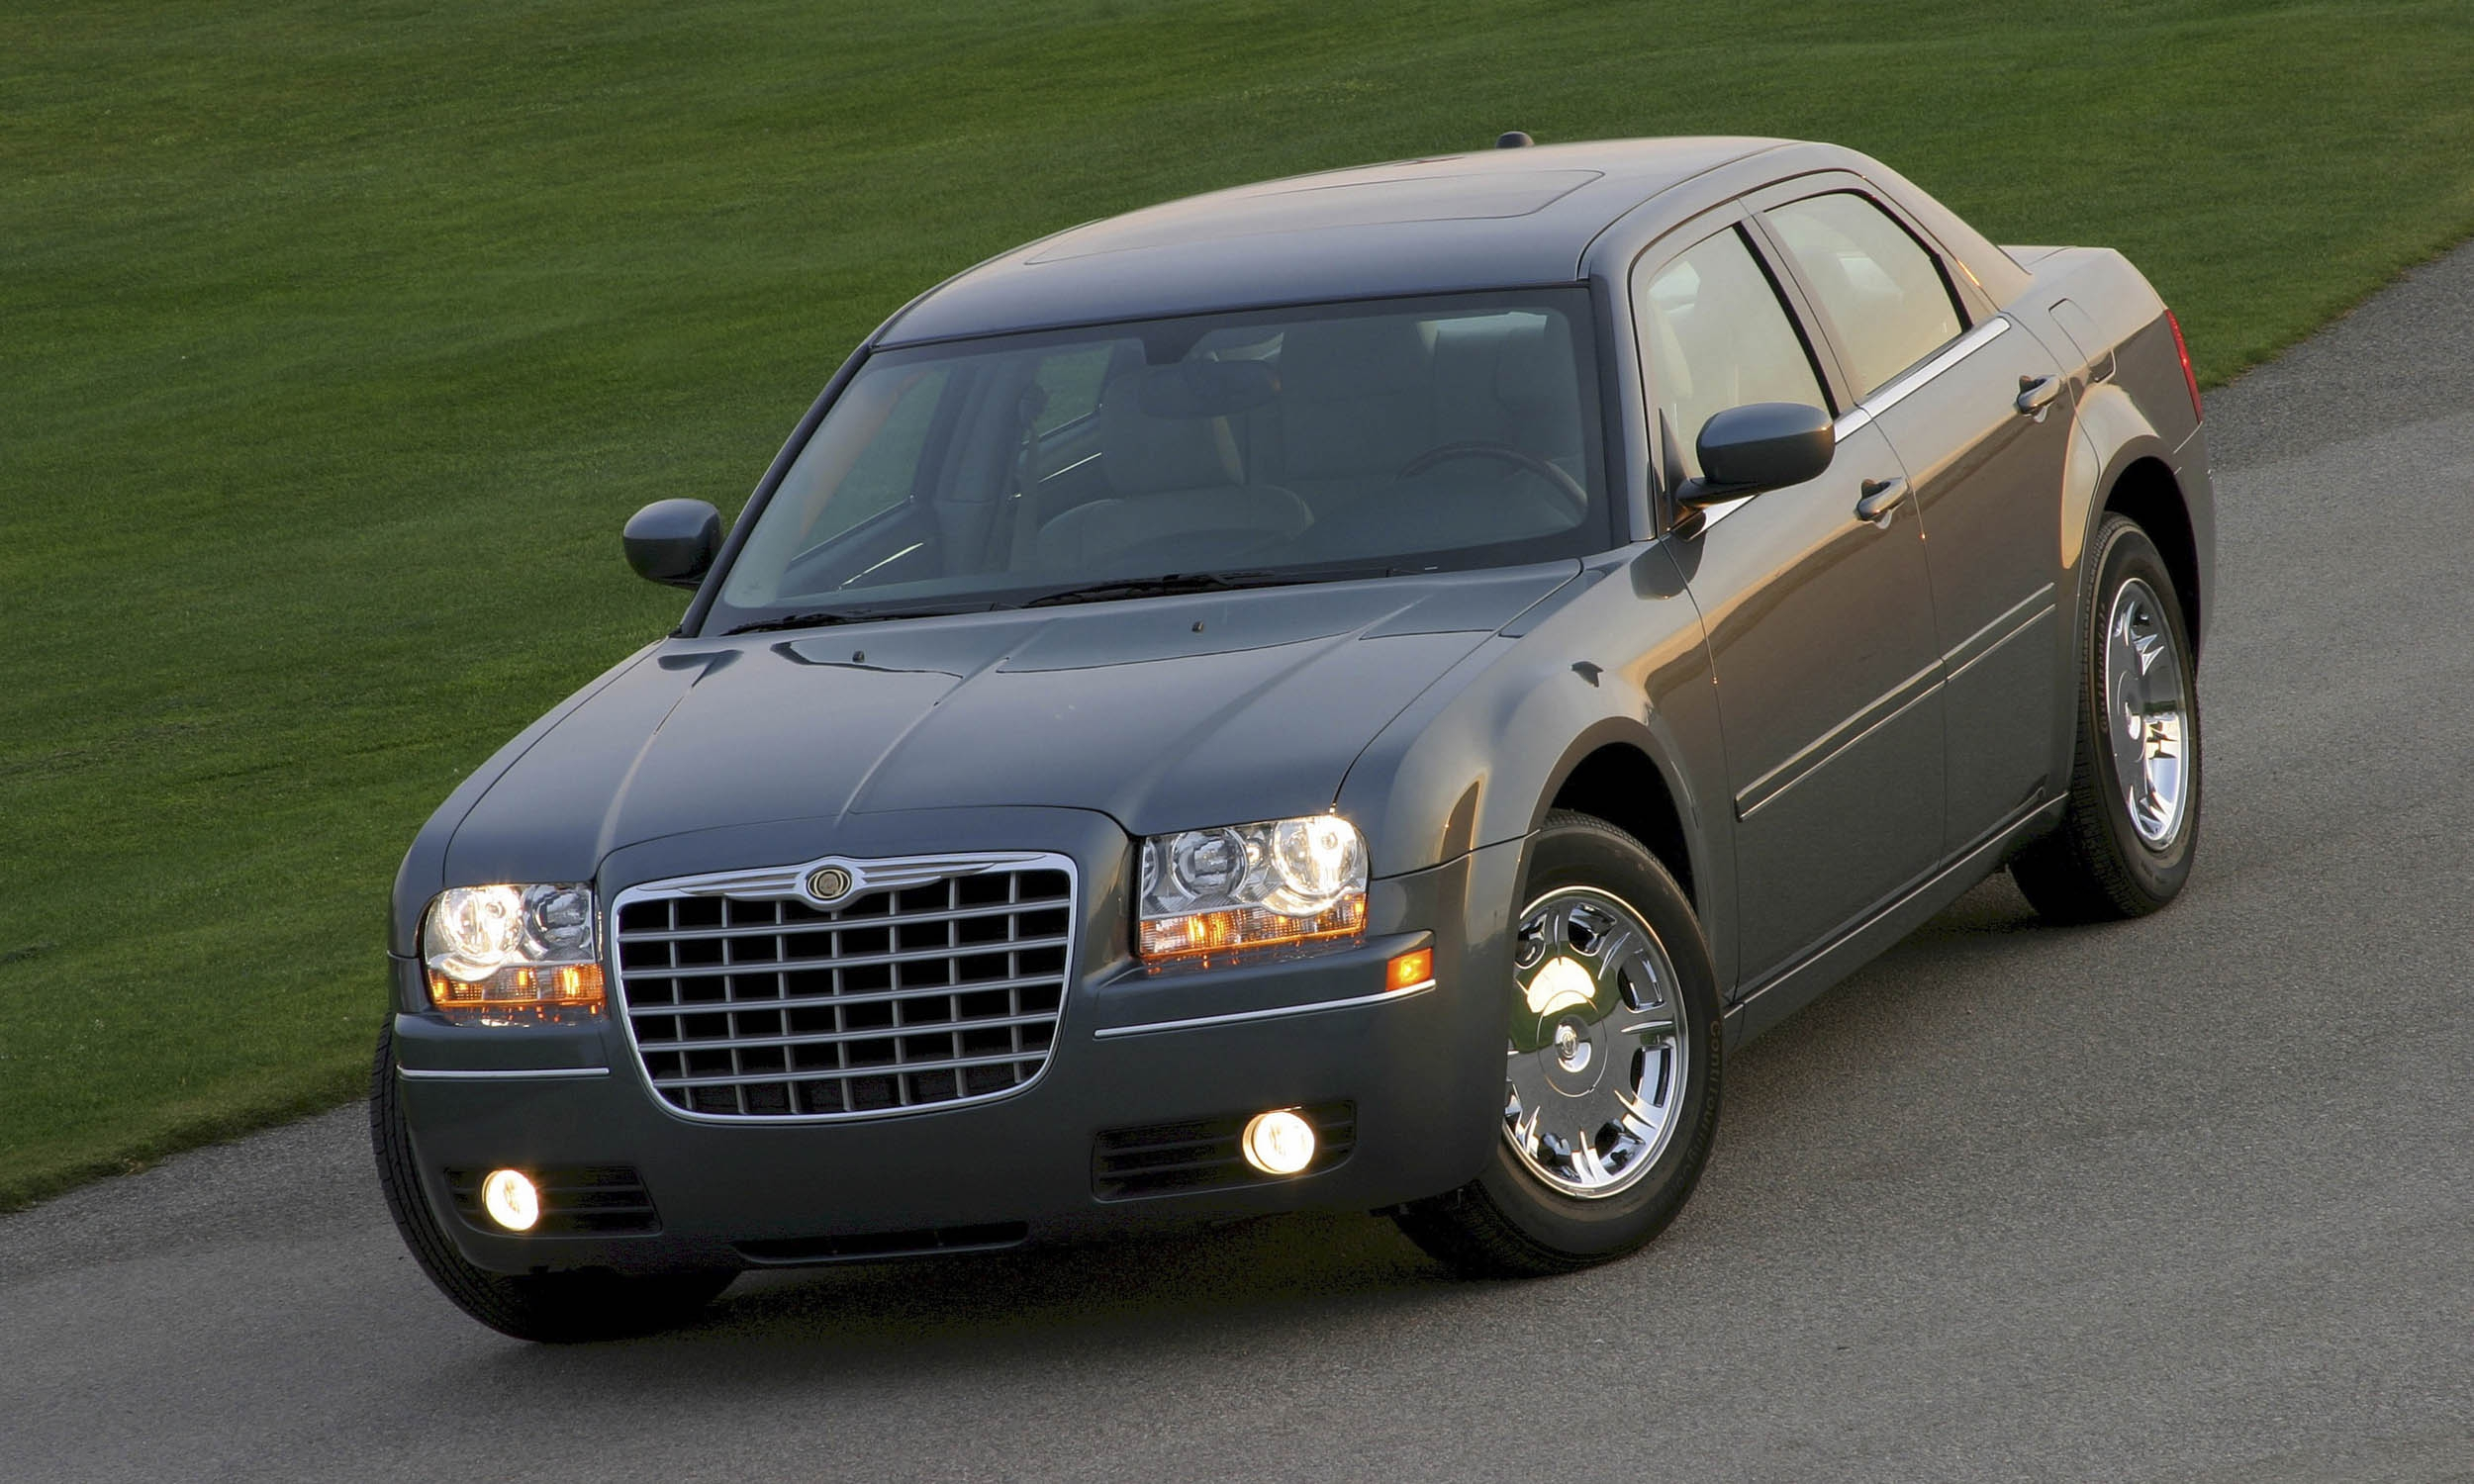 Custom Chrysler 300 >> Chrysler 300 Wallpapers Images Photos Pictures Backgrounds